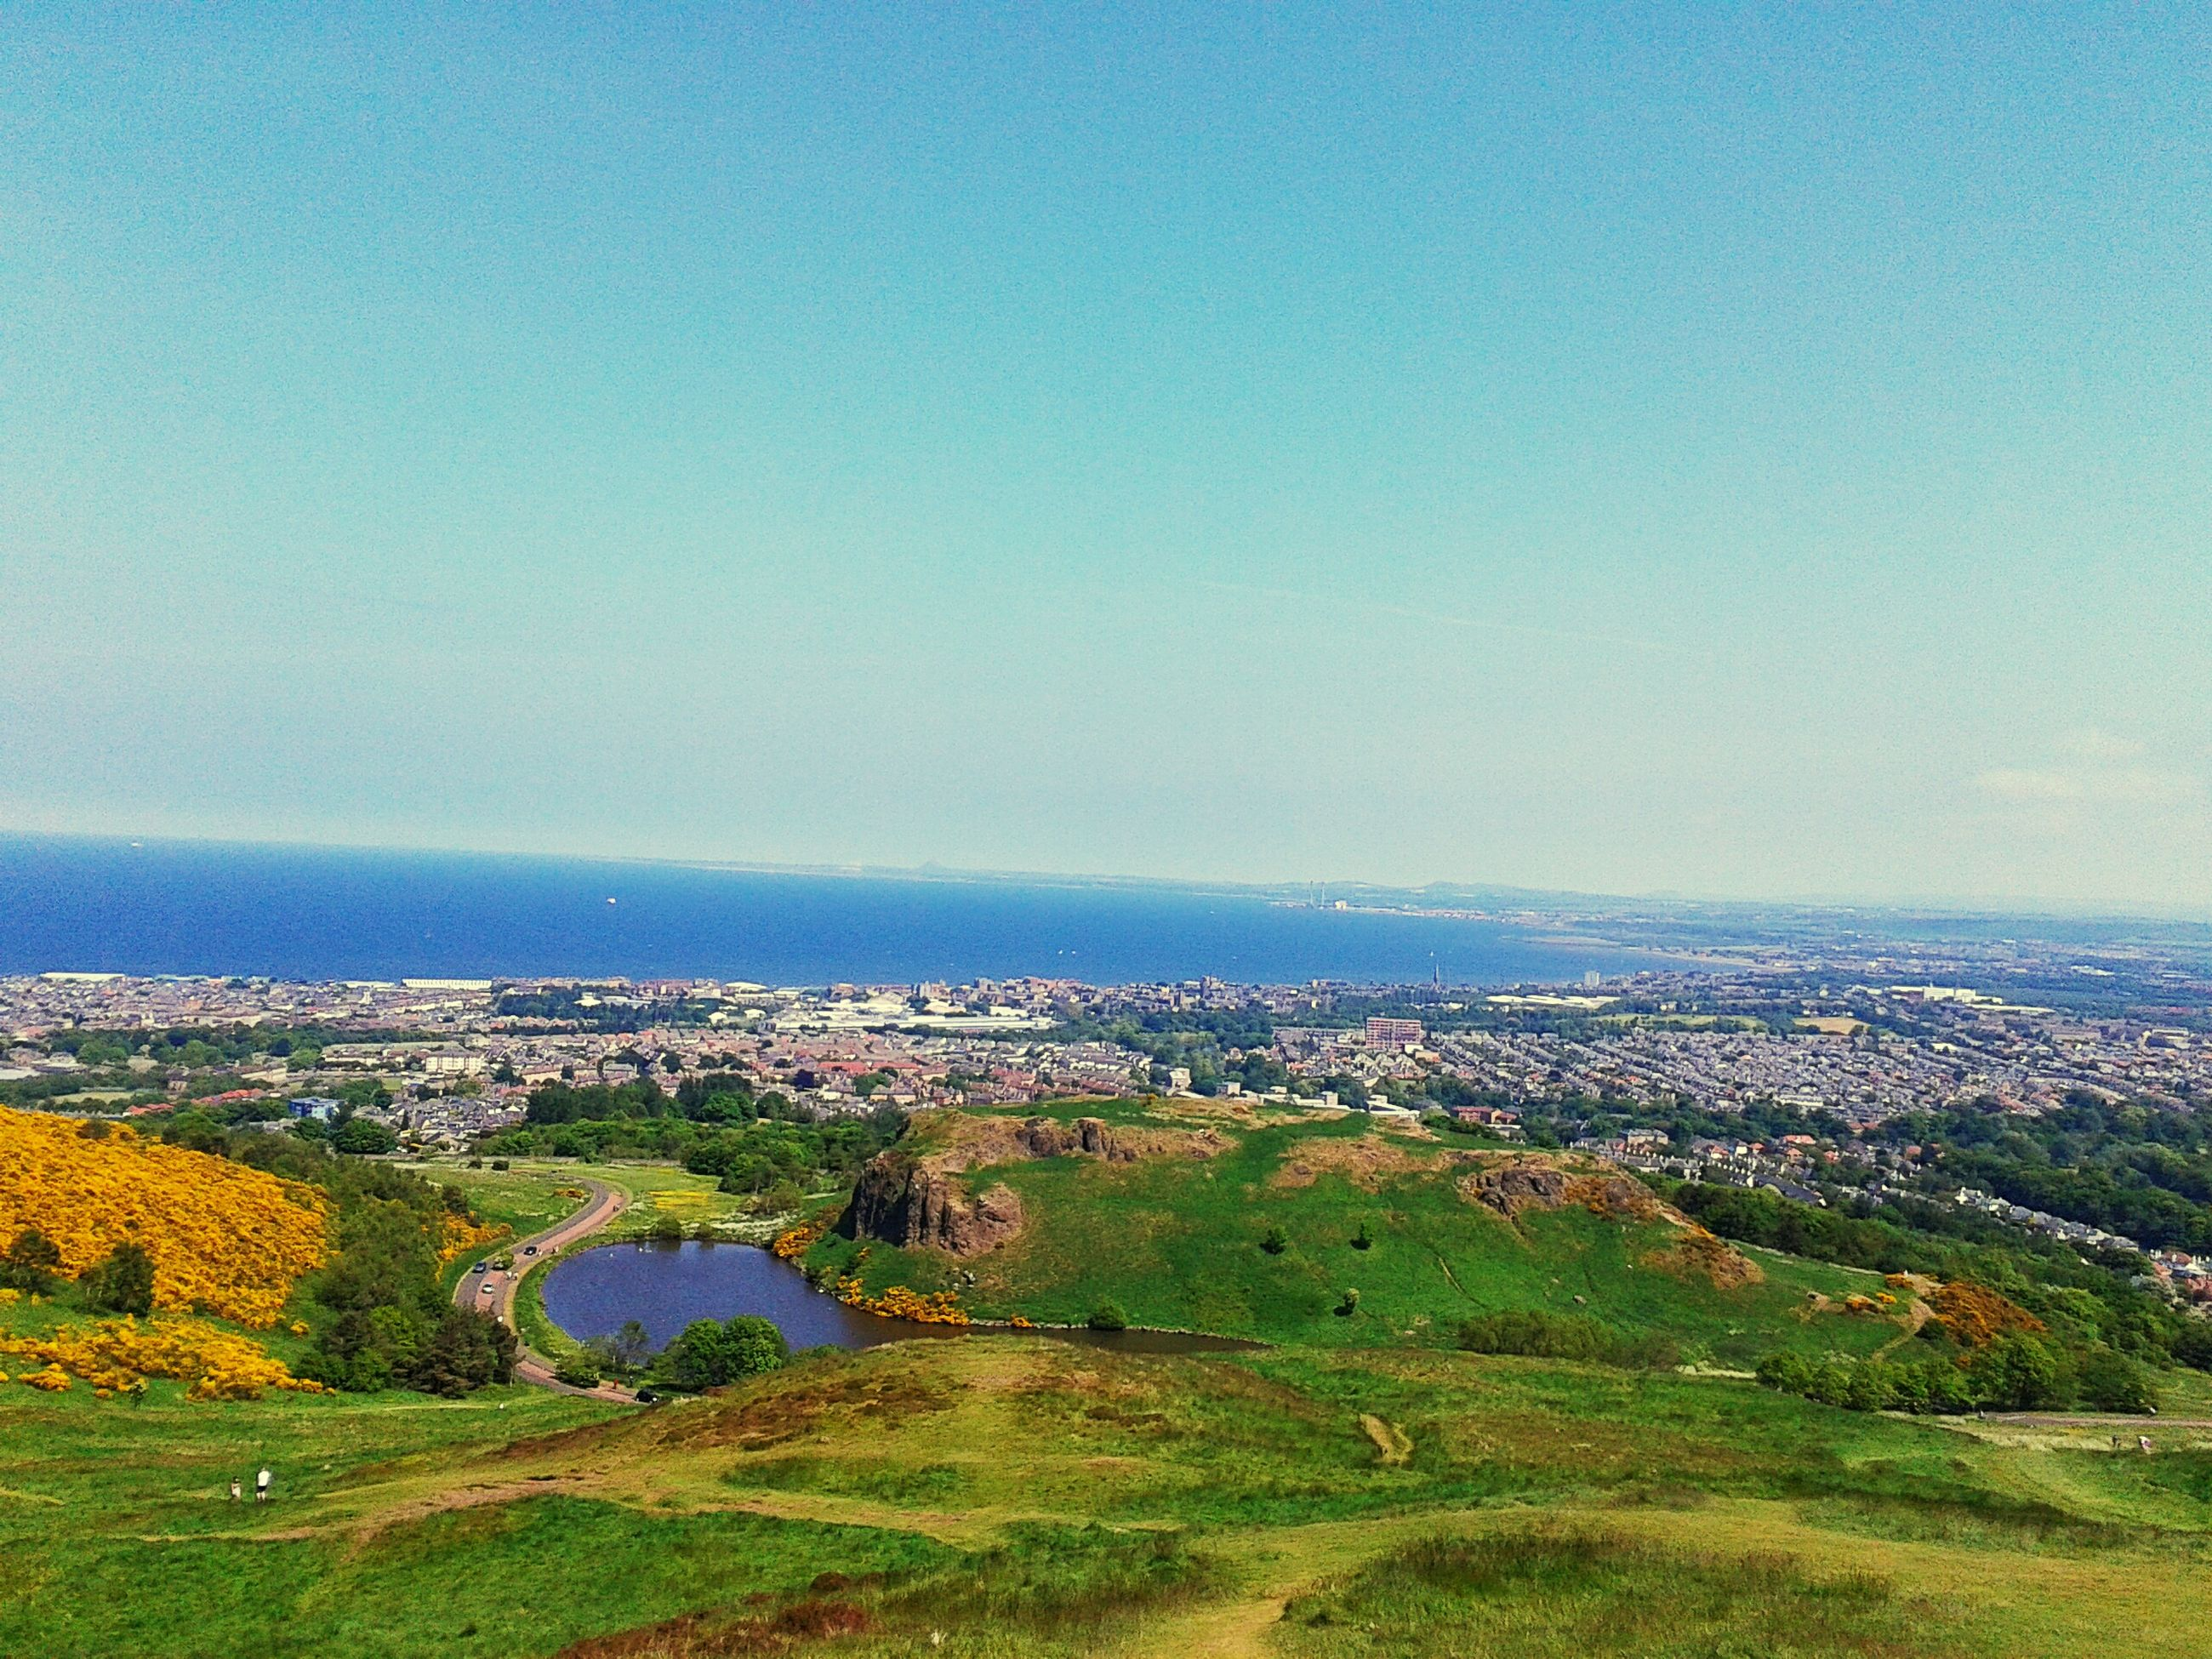 landscape, cityscape, high angle view, building exterior, copy space, clear sky, architecture, built structure, aerial view, scenics, blue, sea, city, horizon over water, crowded, tranquil scene, residential district, tranquility, beauty in nature, nature